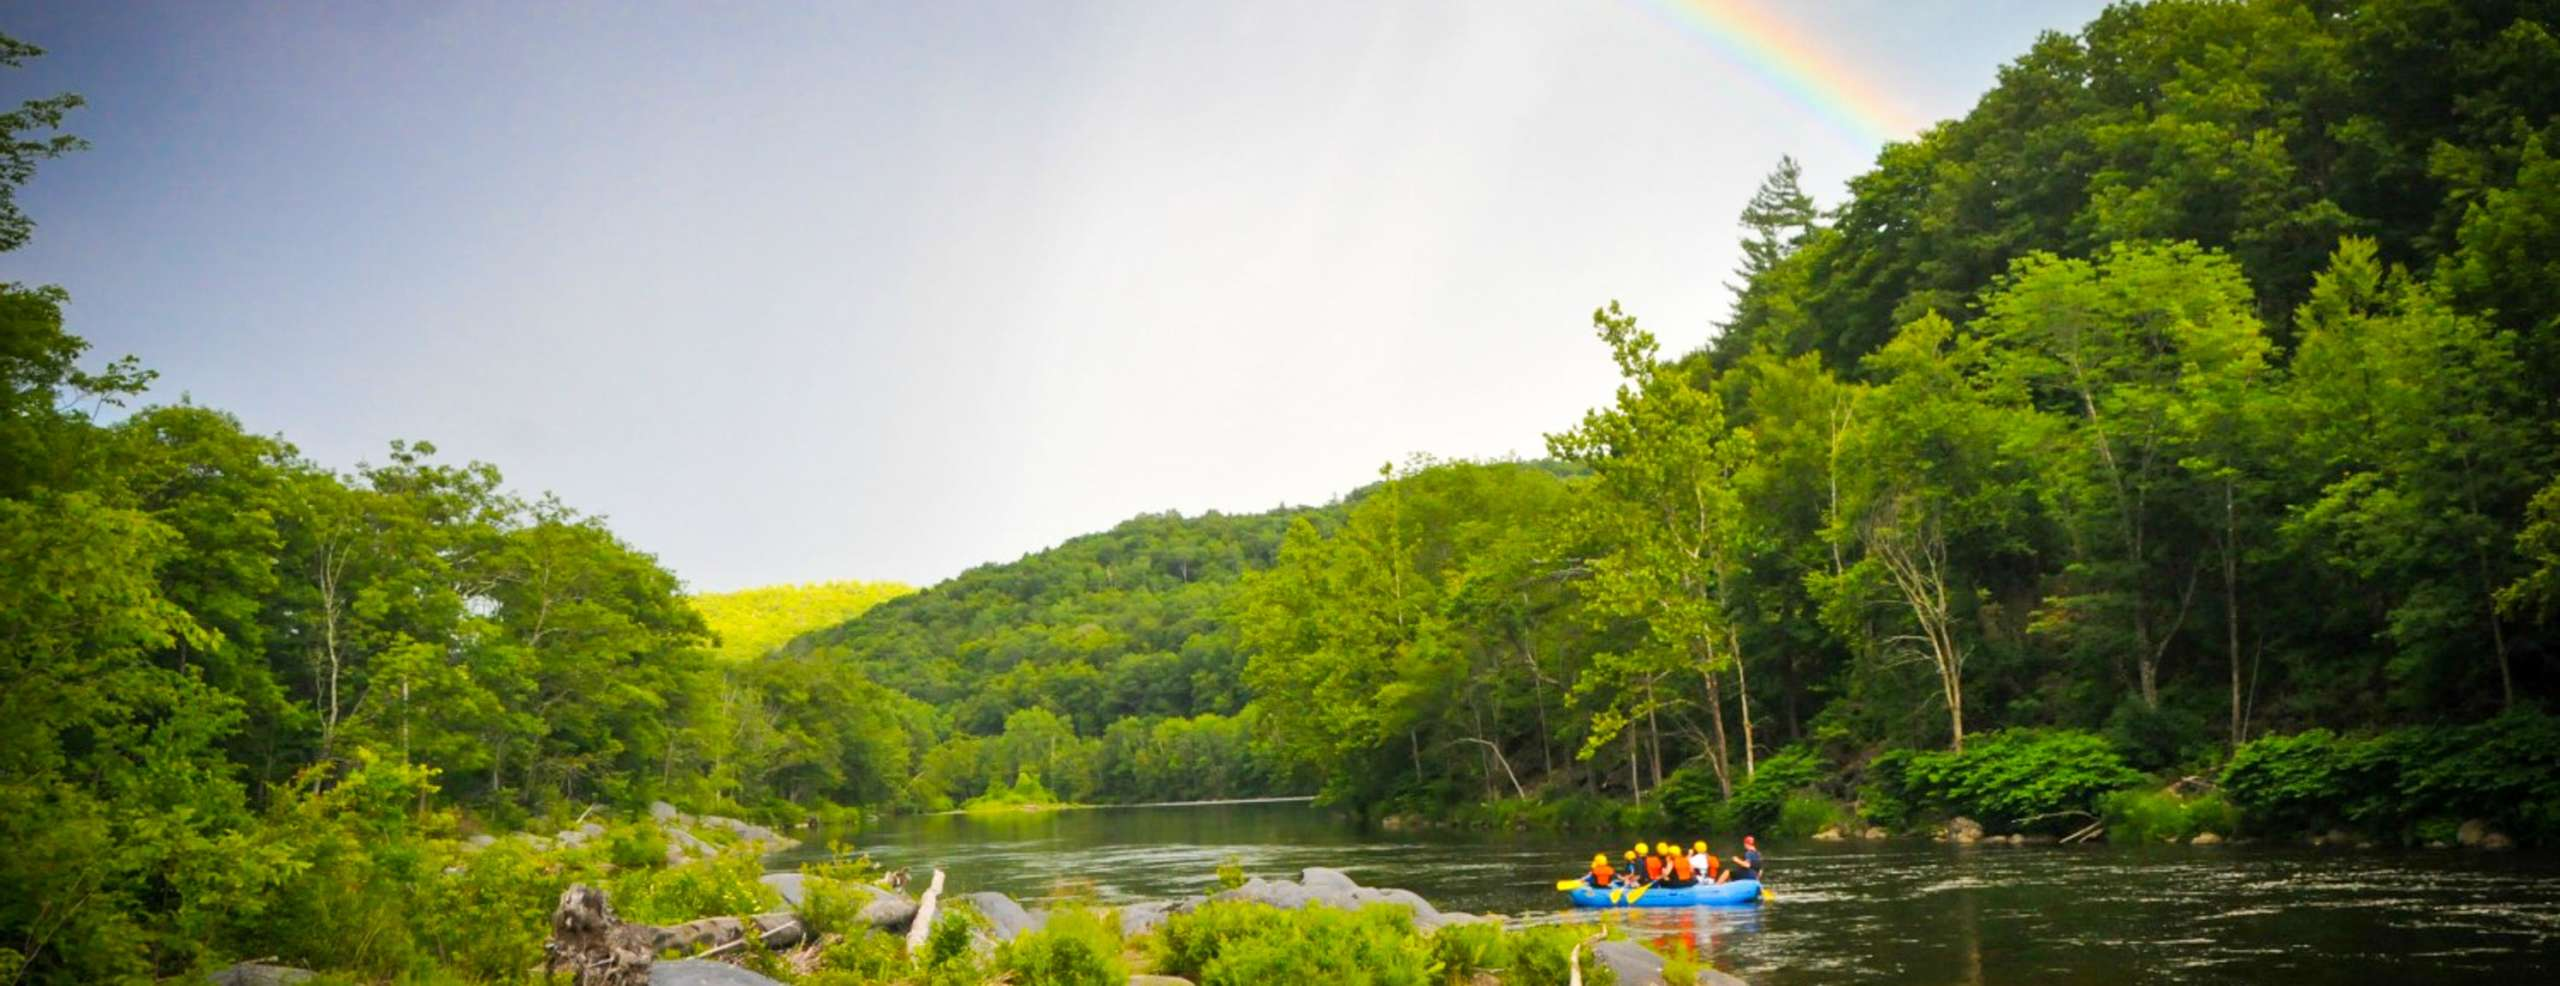 Rafting down a calm river with a rainbow in the sky